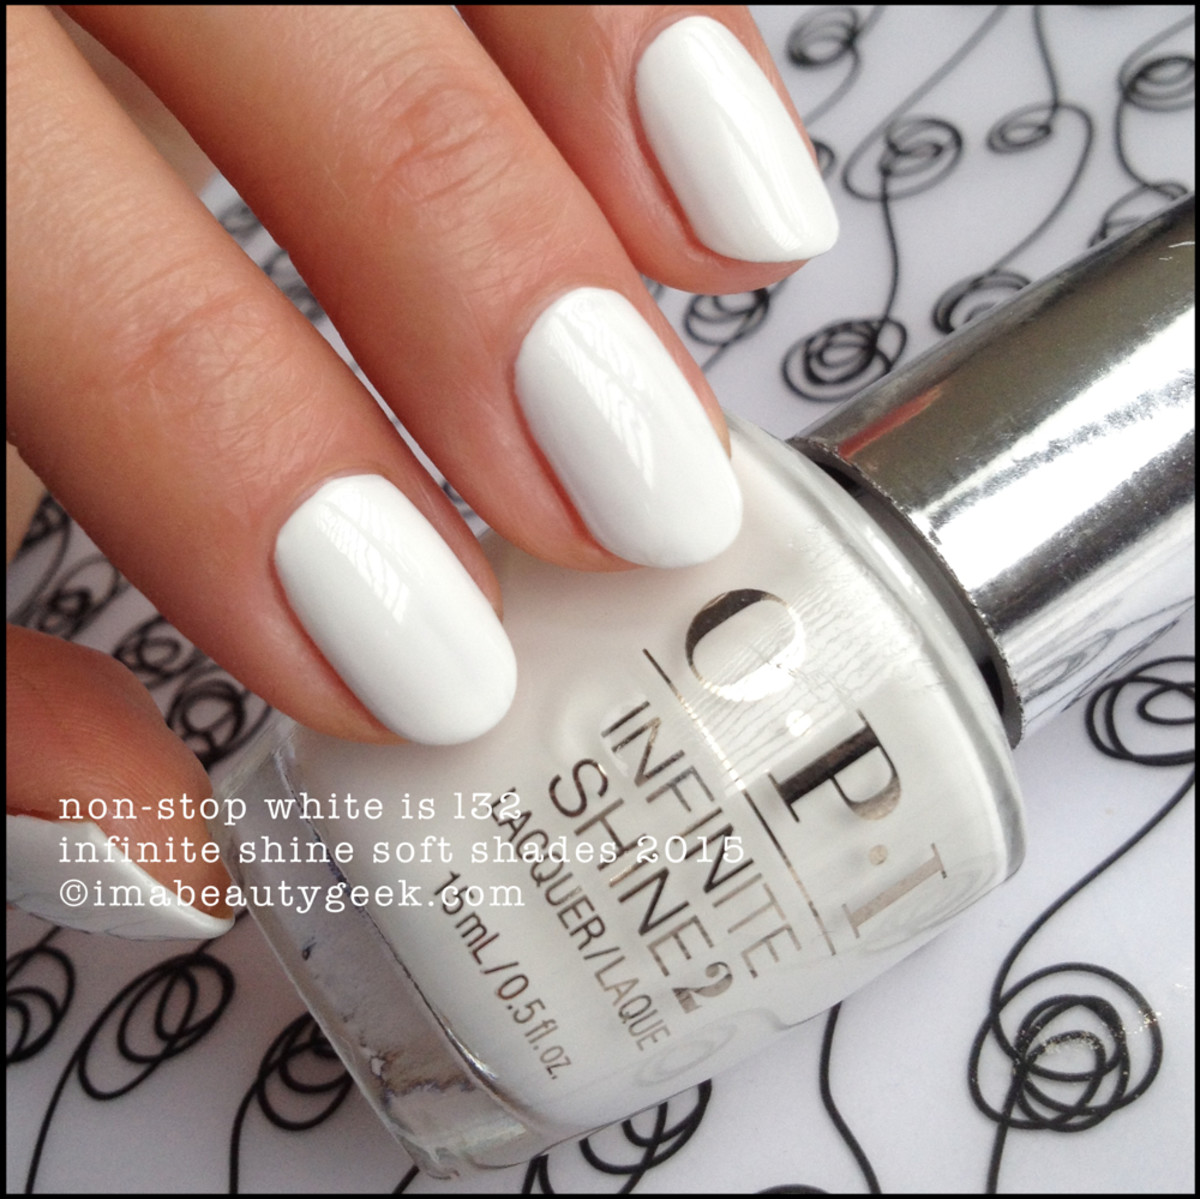 OPI Infinite Shine Non-Stop White OPI IS Soft Shades 2015